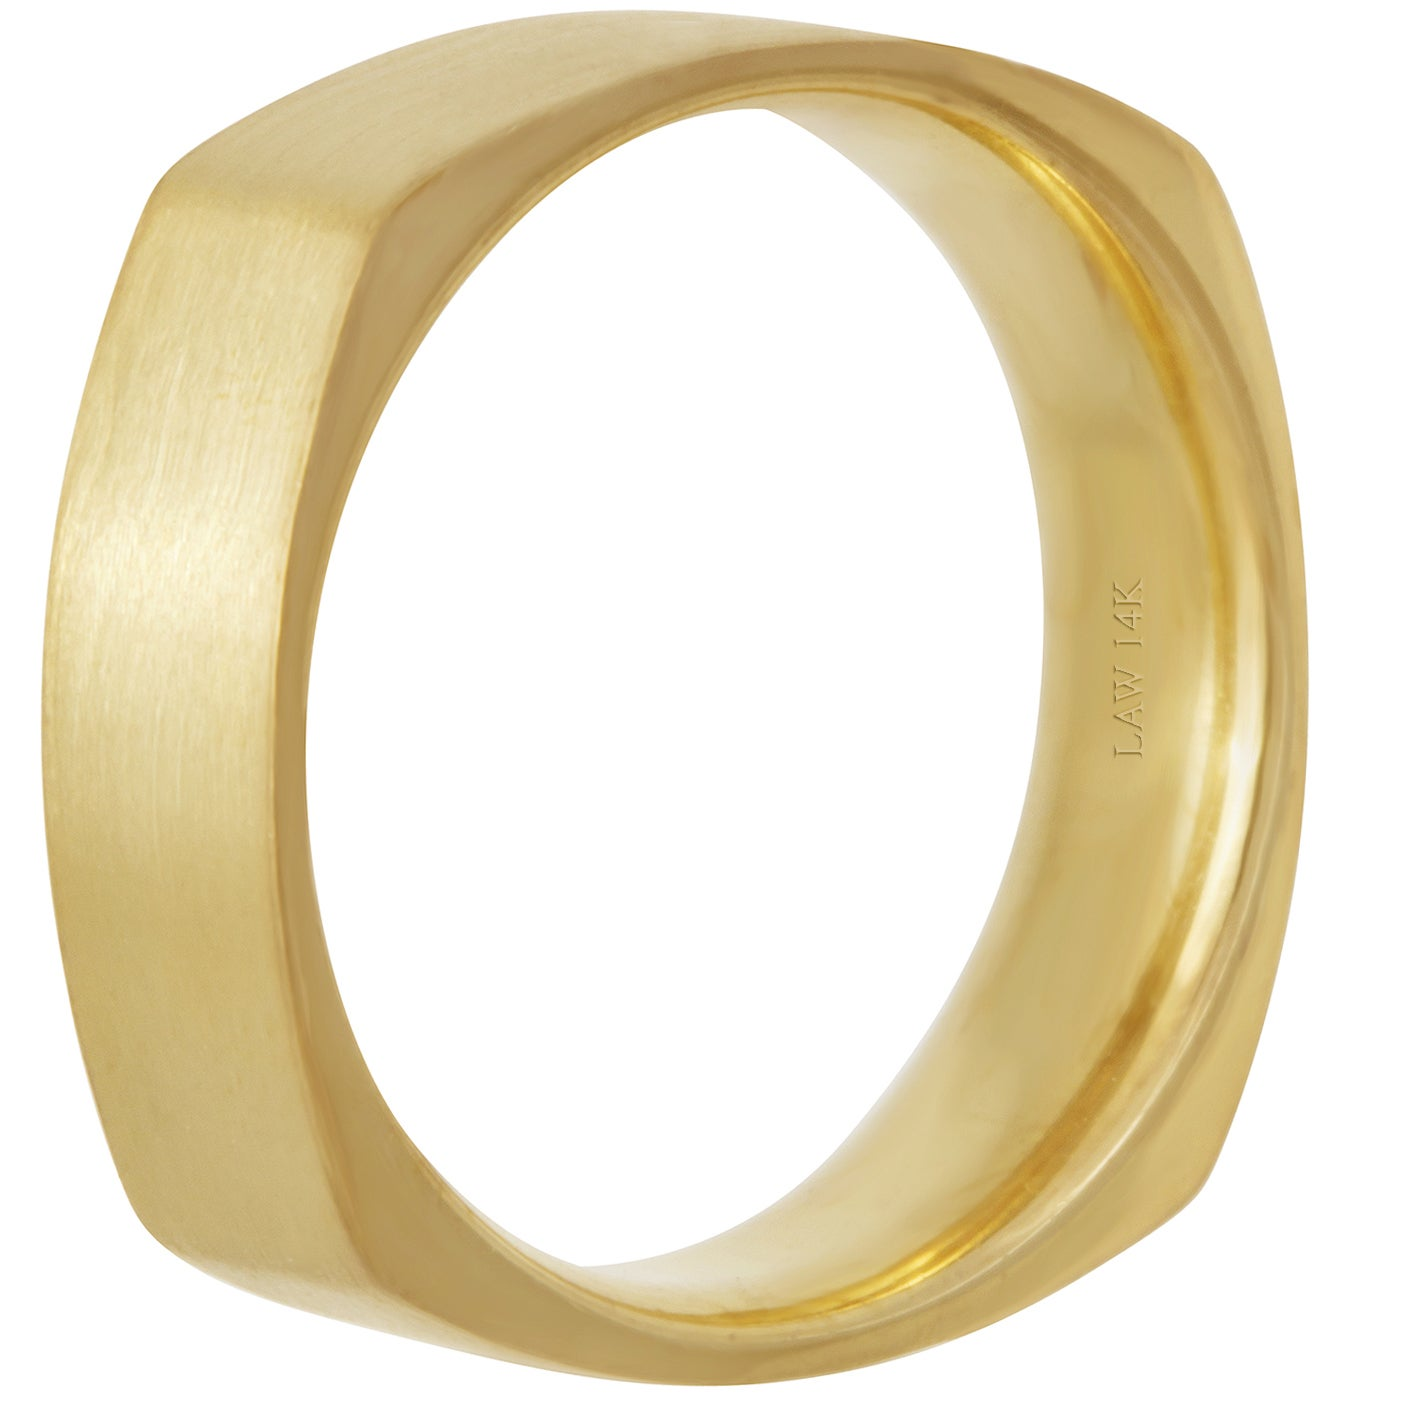 29962dc0074 Shop 14k Yellow Gold Plain Satin Comfort Fit Men s Square Wedding Bands -  Free Shipping Today - Overstock - 15807486